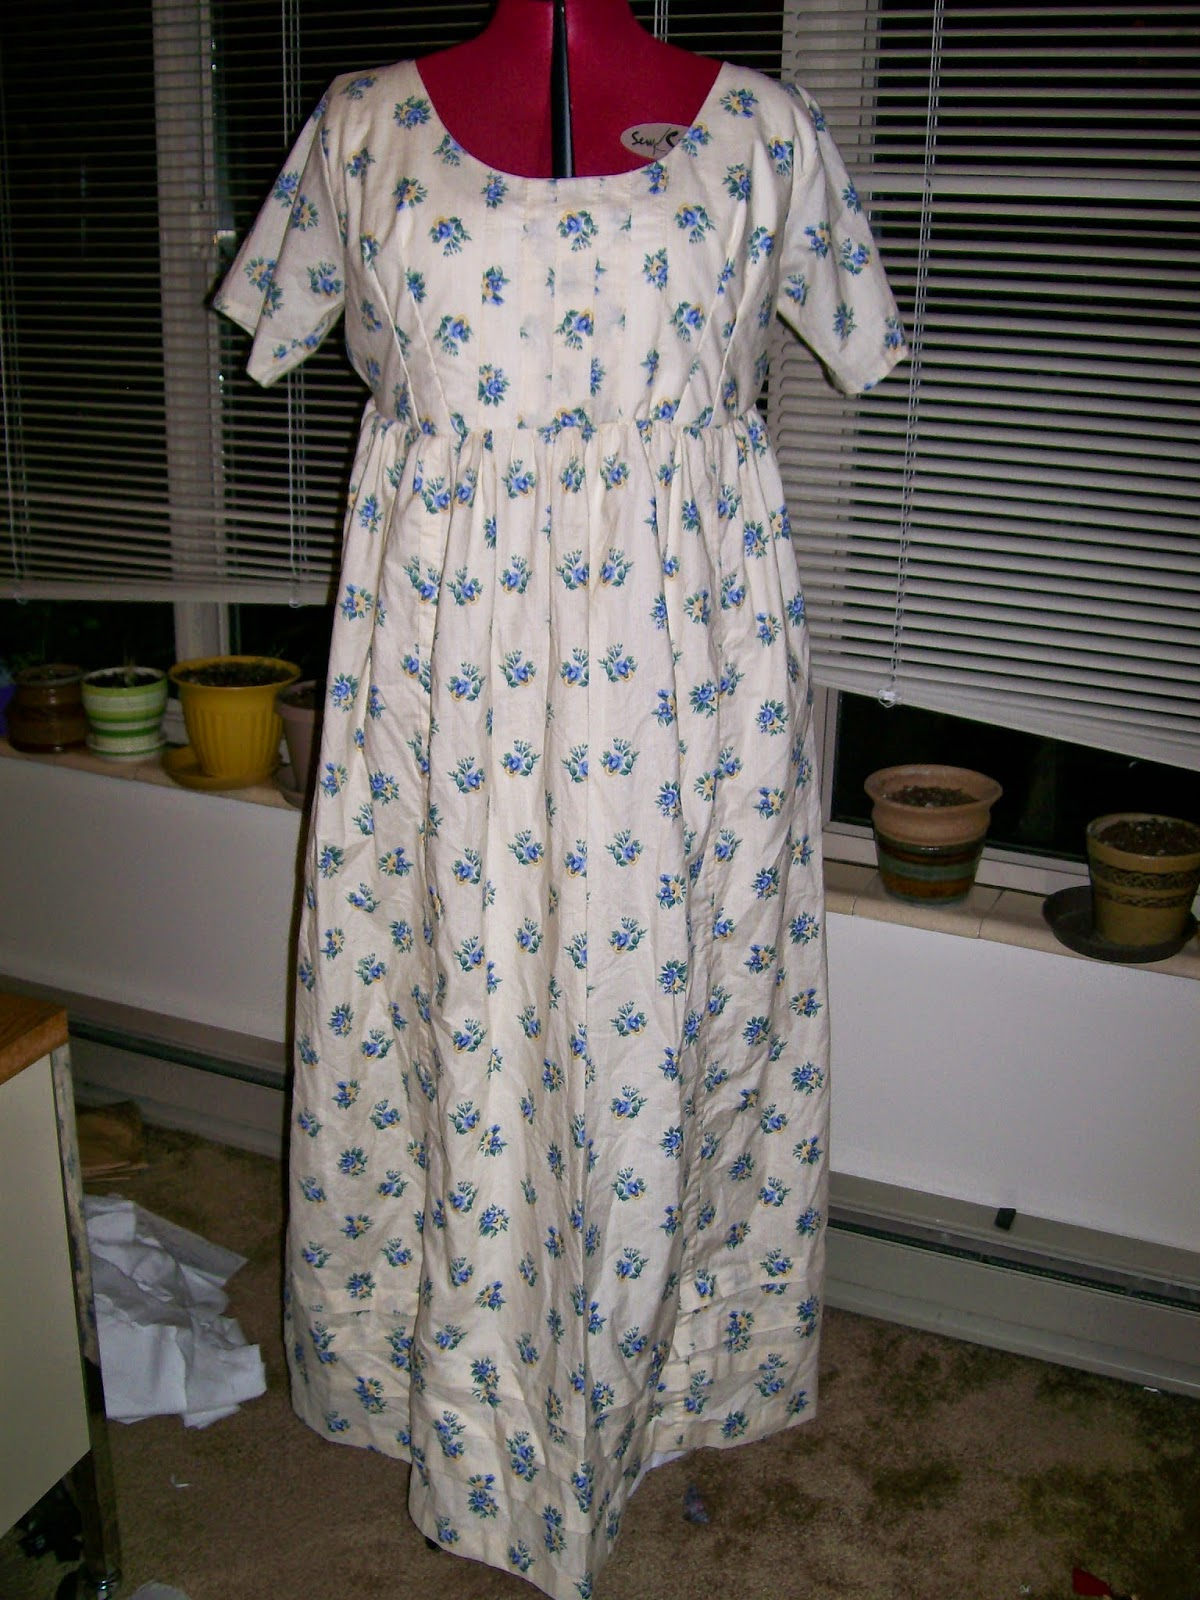 Completed Regency/Empire/Neoclassical dress.